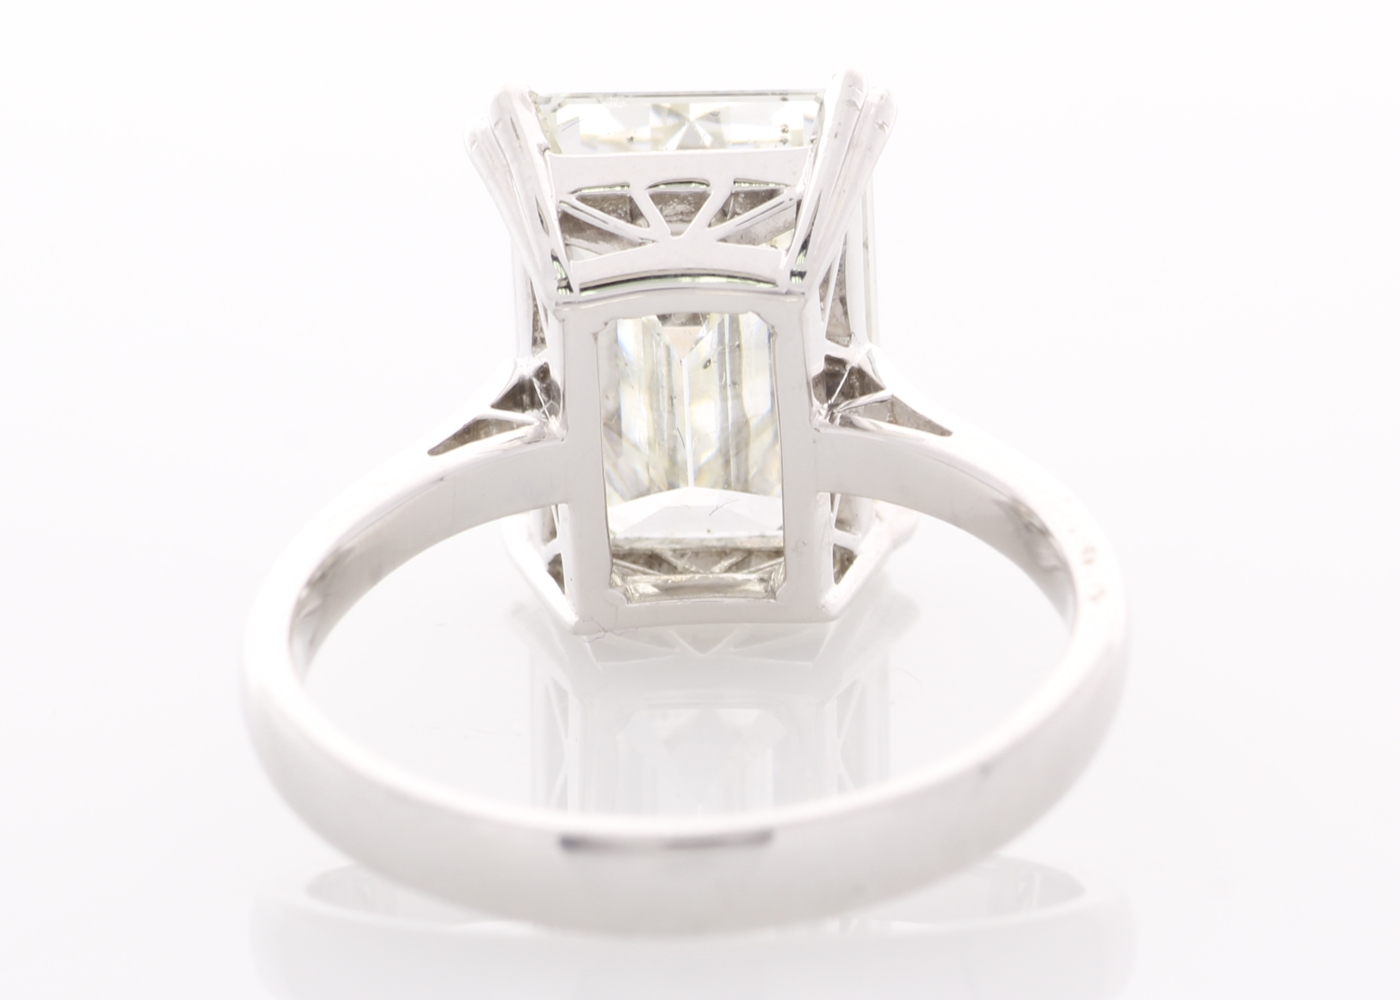 Lot 2 - 18ct White Gold Single Stone Prong Set Diamond Ring 5.86 Carats HRD I SI2